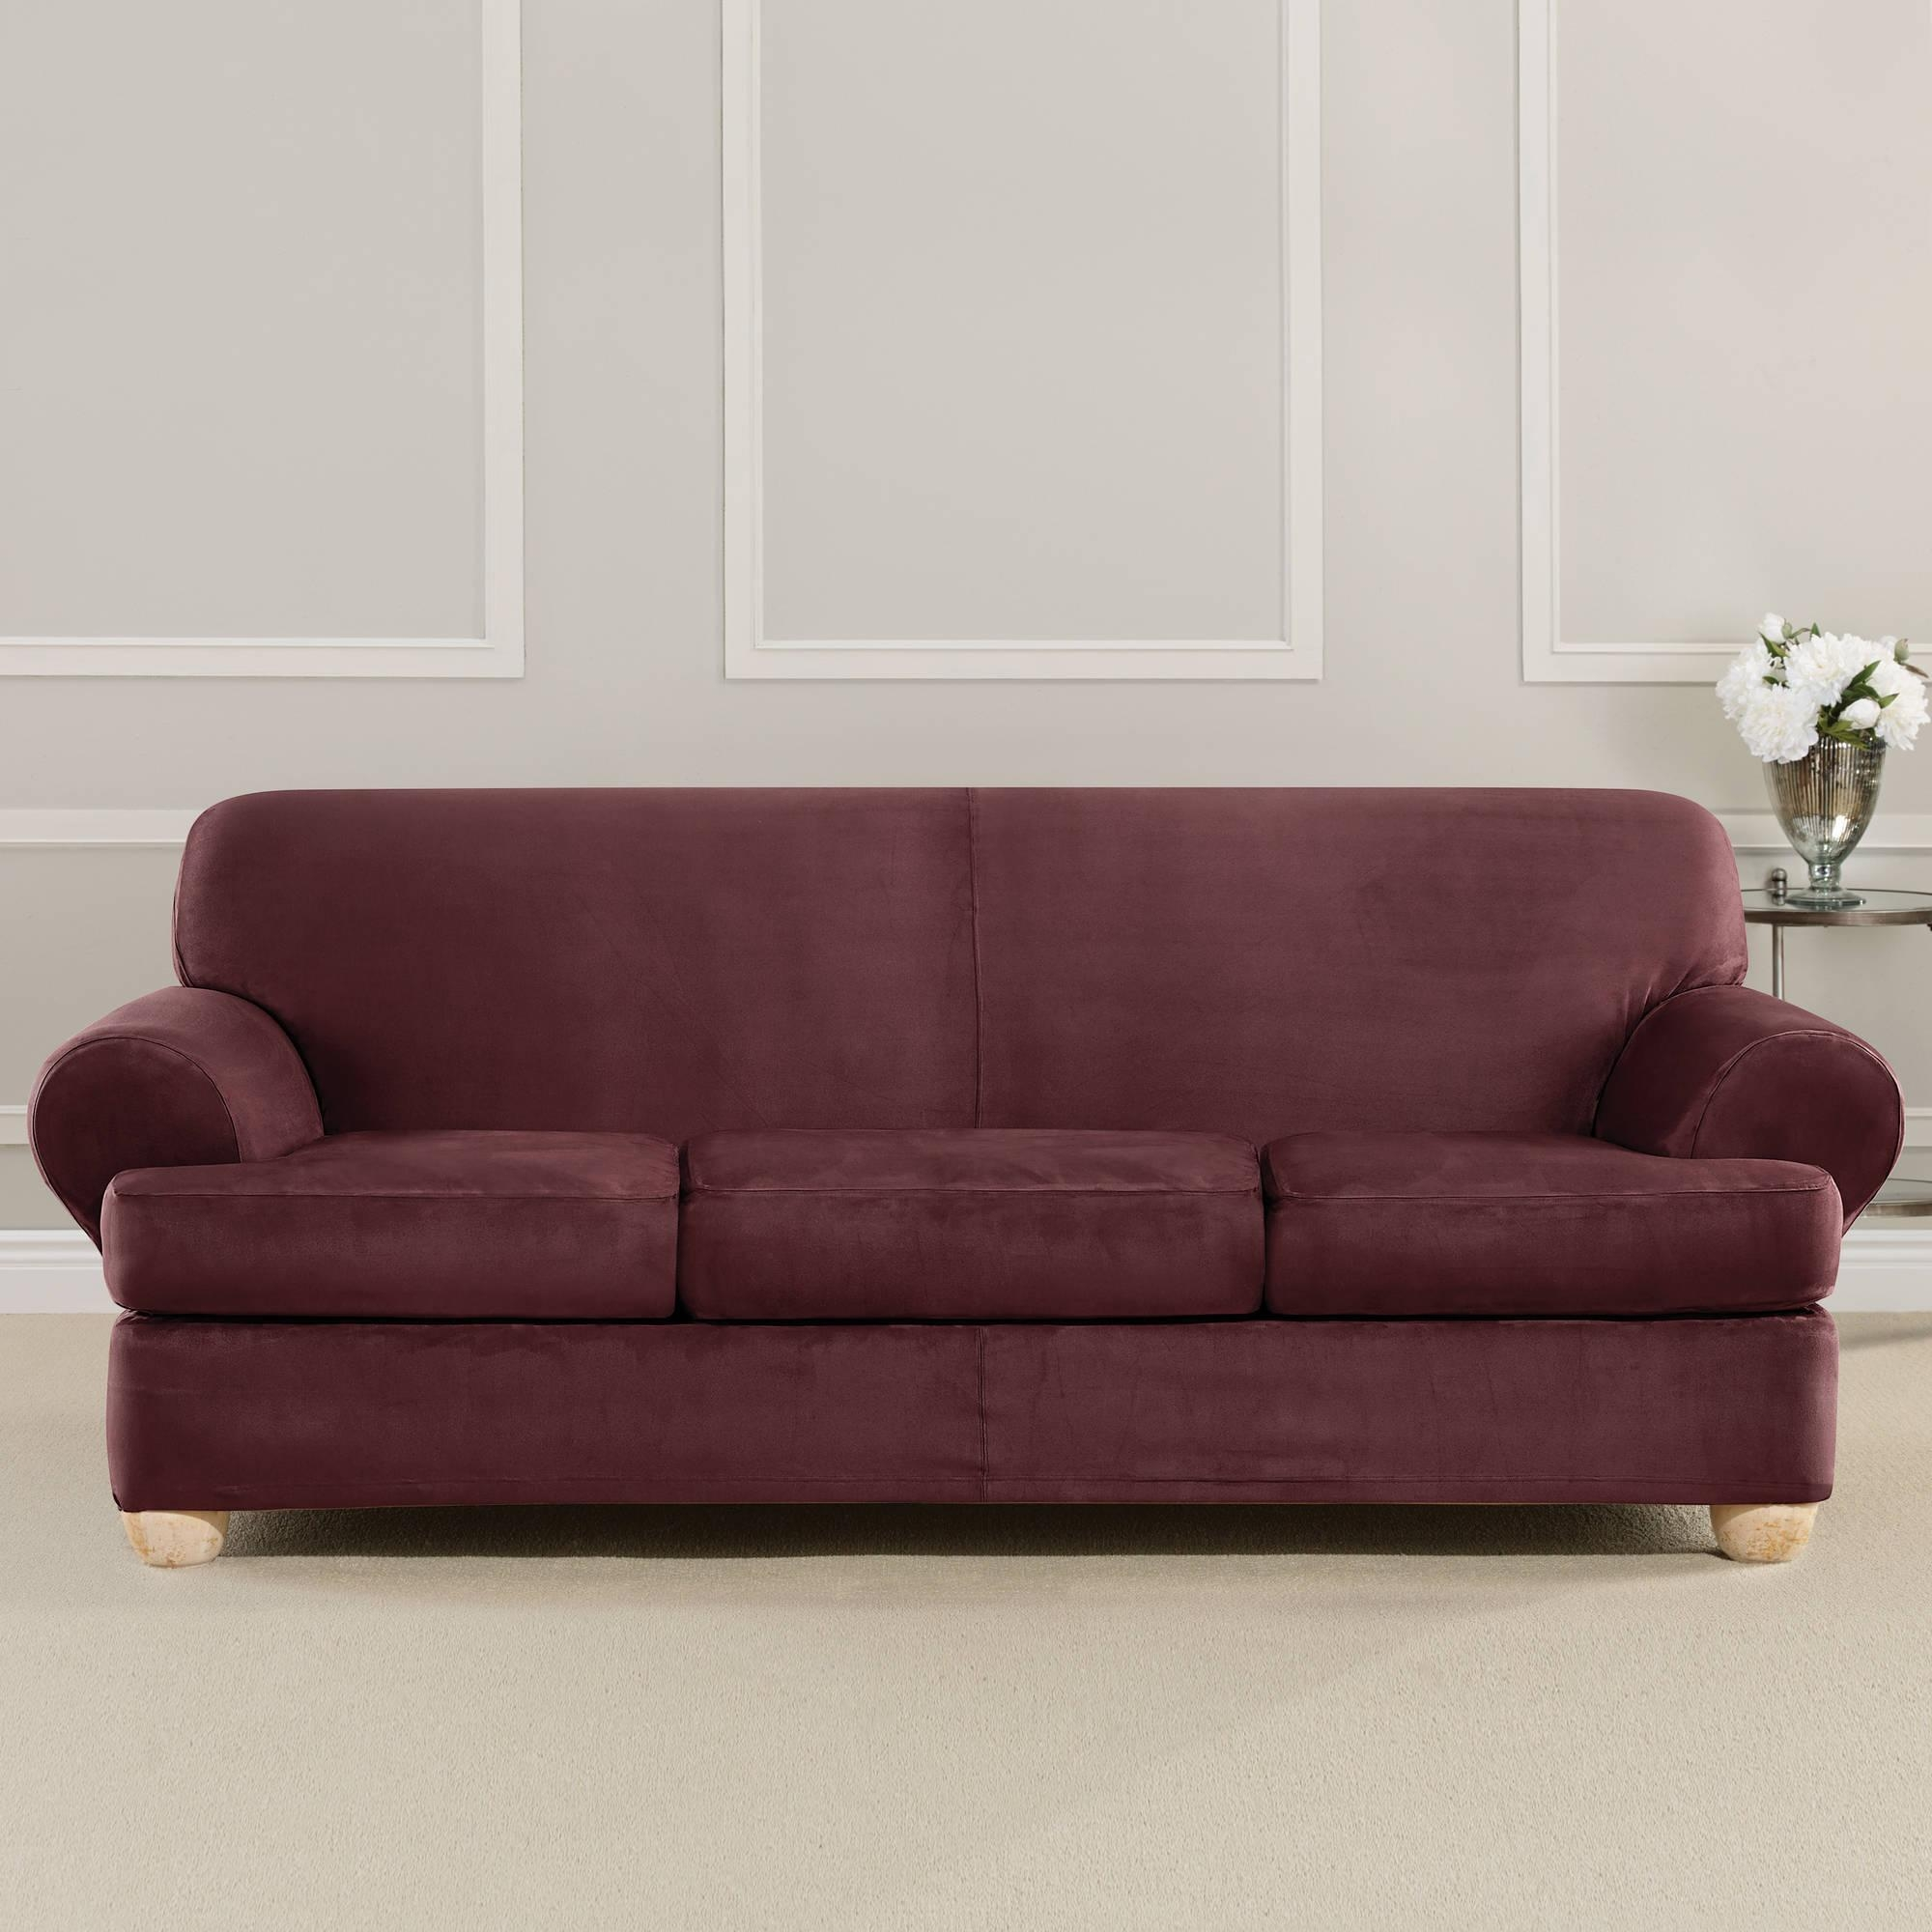 Sofas Center : Cushion Sofa Slipcovers T Style Camel Back Pertaining To Slipcovers For 3 Cushion Sofas (Image 16 of 20)